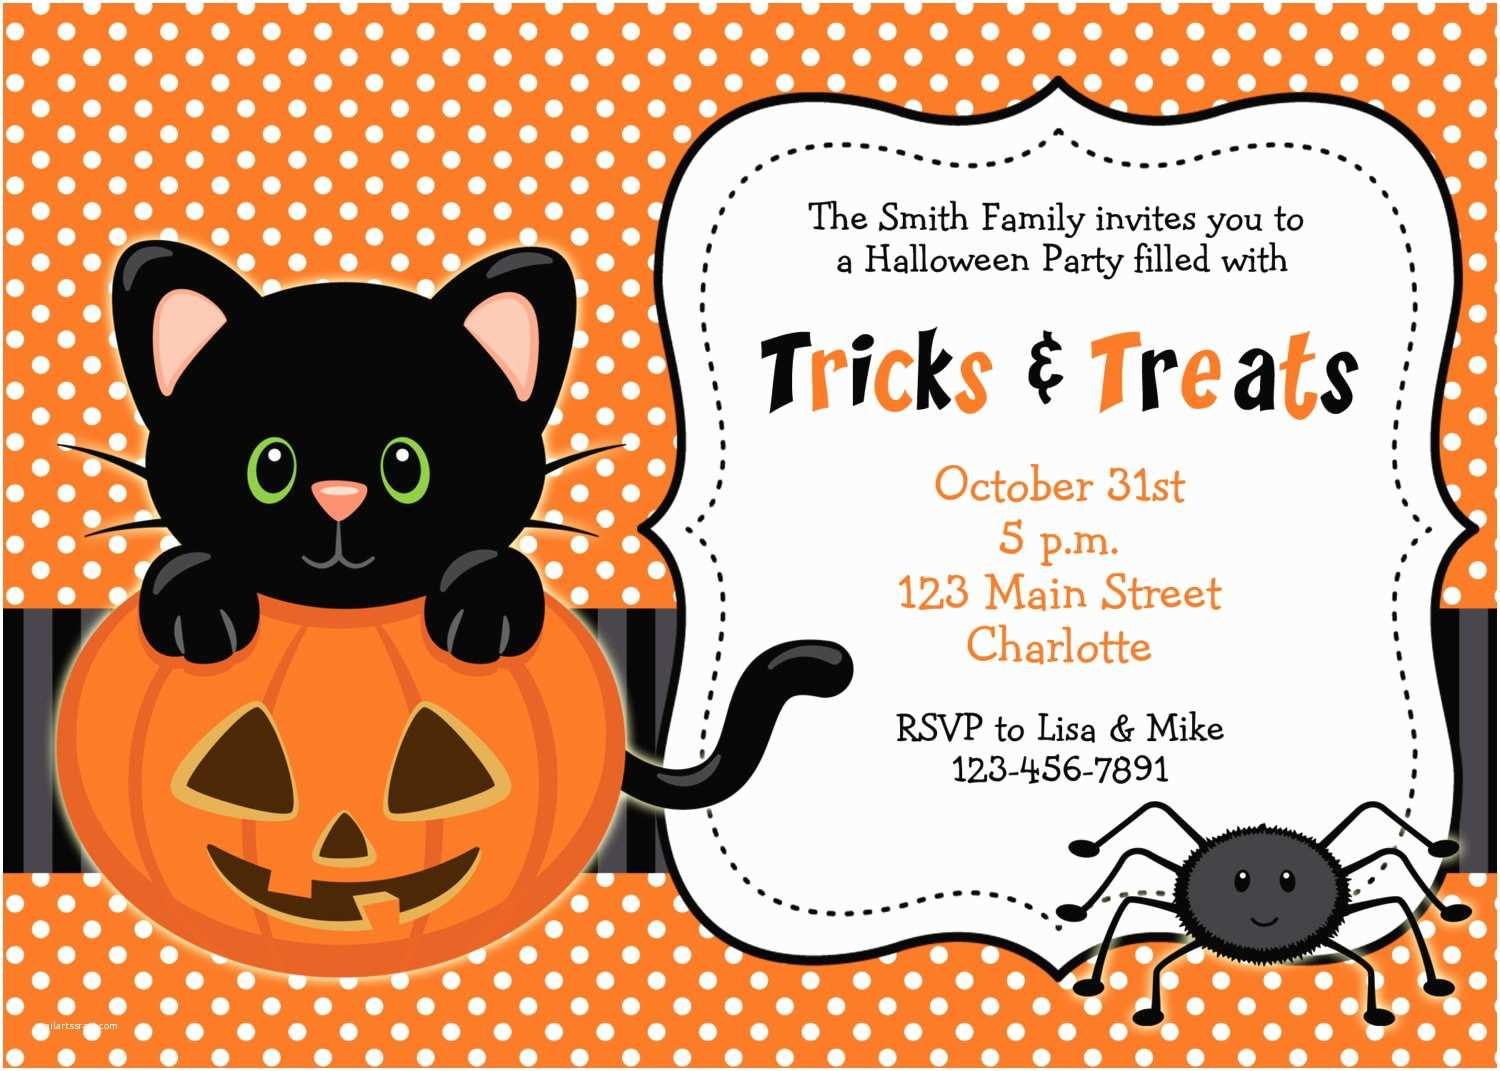 Halloween themed Birthday Party Invitations Free Printable Halloween themed Birthday Party Invitations